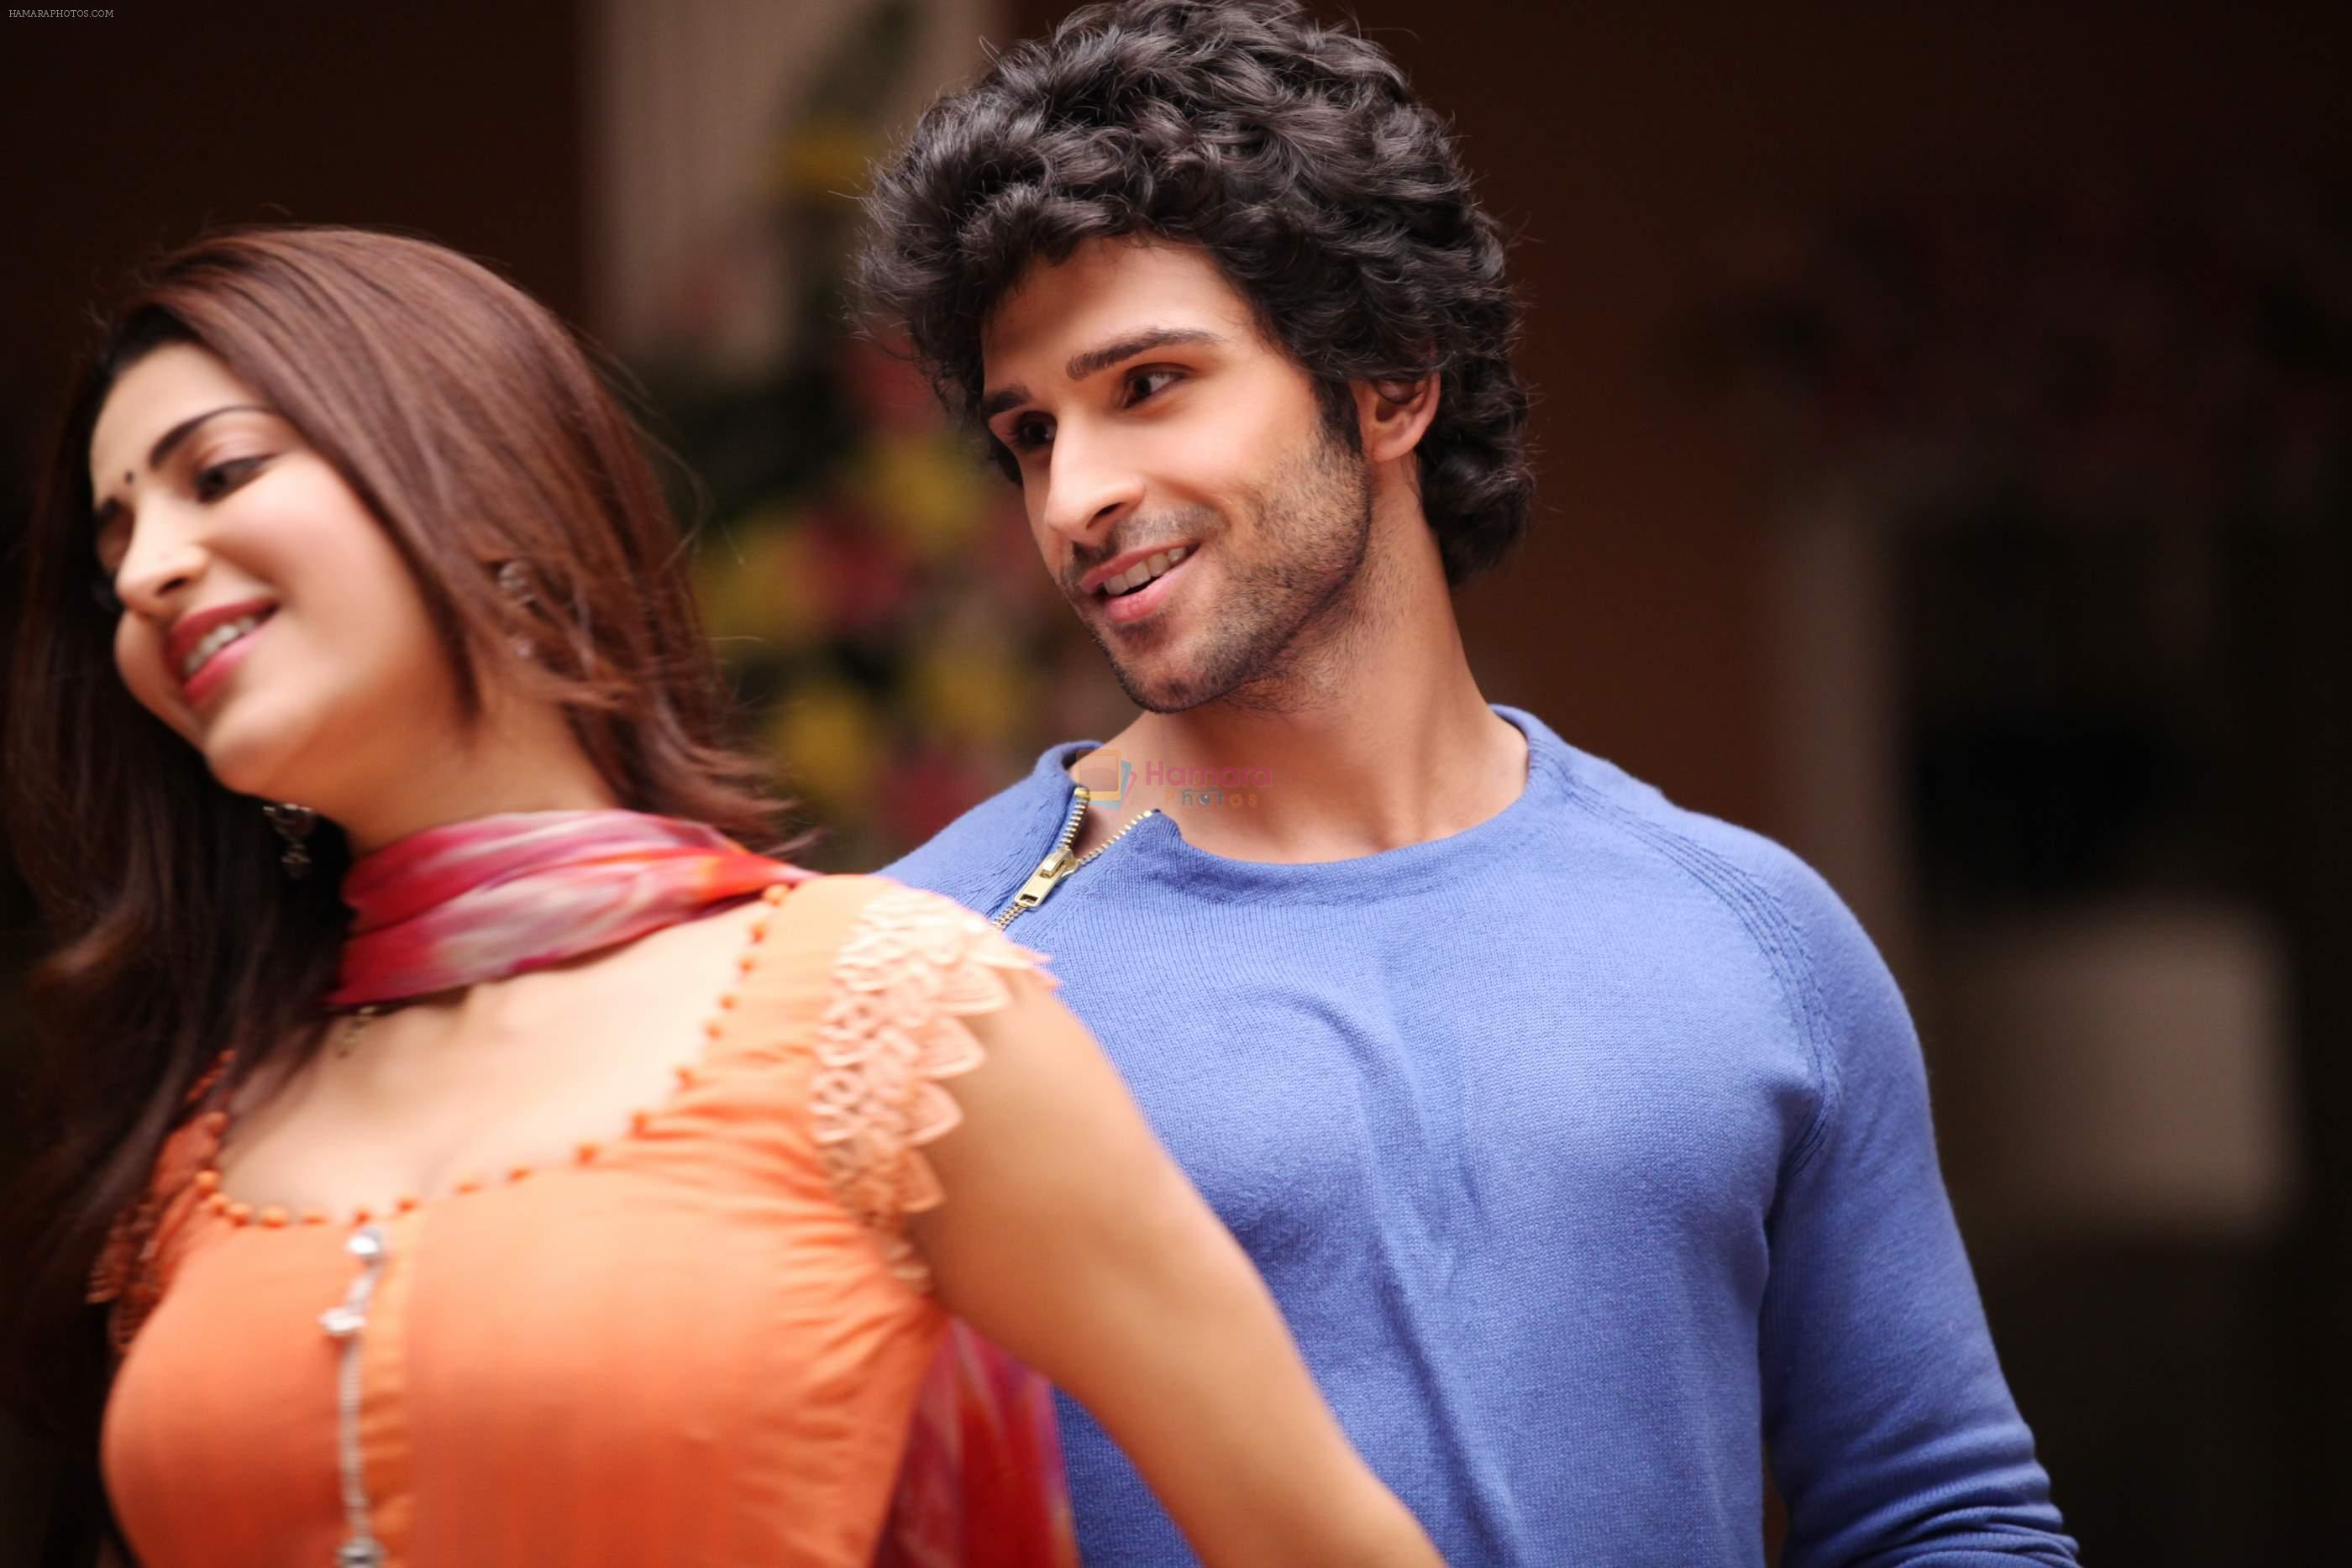 girish kumar, shruti haasan in the still from movie ramaiya